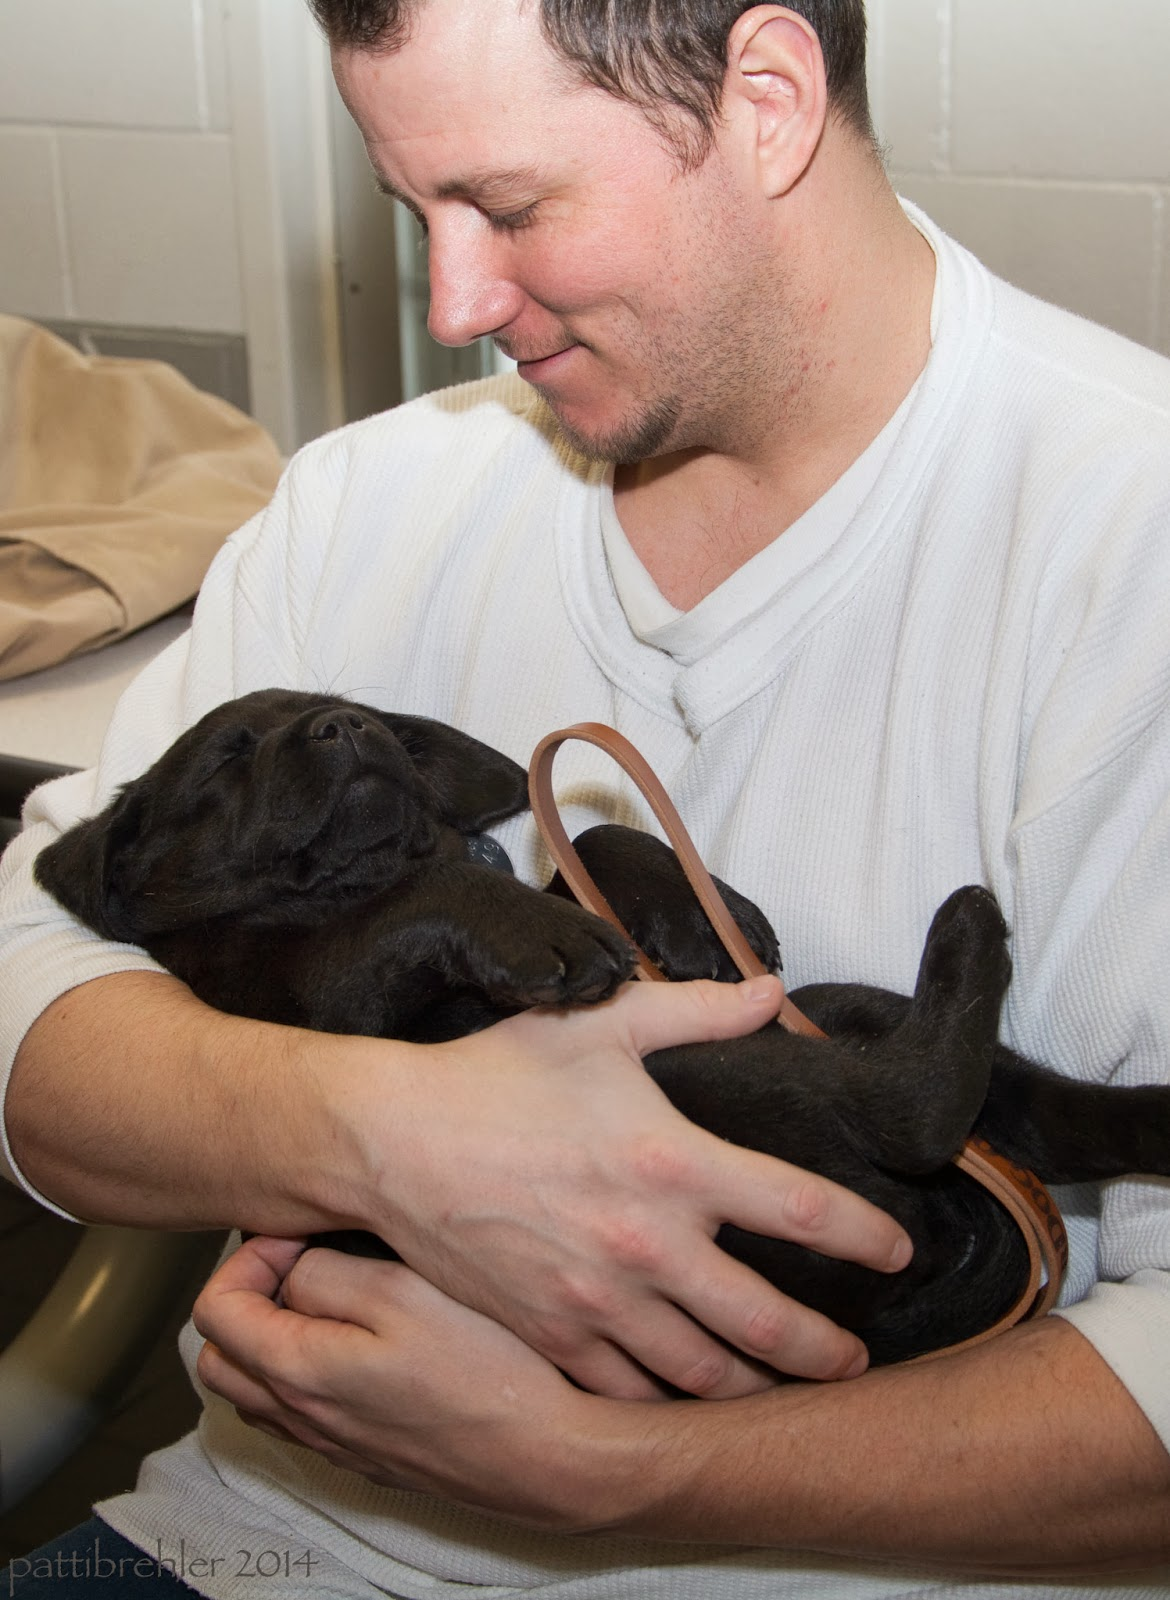 A man dressed in a white t-shirt is holding a small black Lab puppy like a baby in his arms. The puppy is sleeping and the man is looking down at it with a smile.